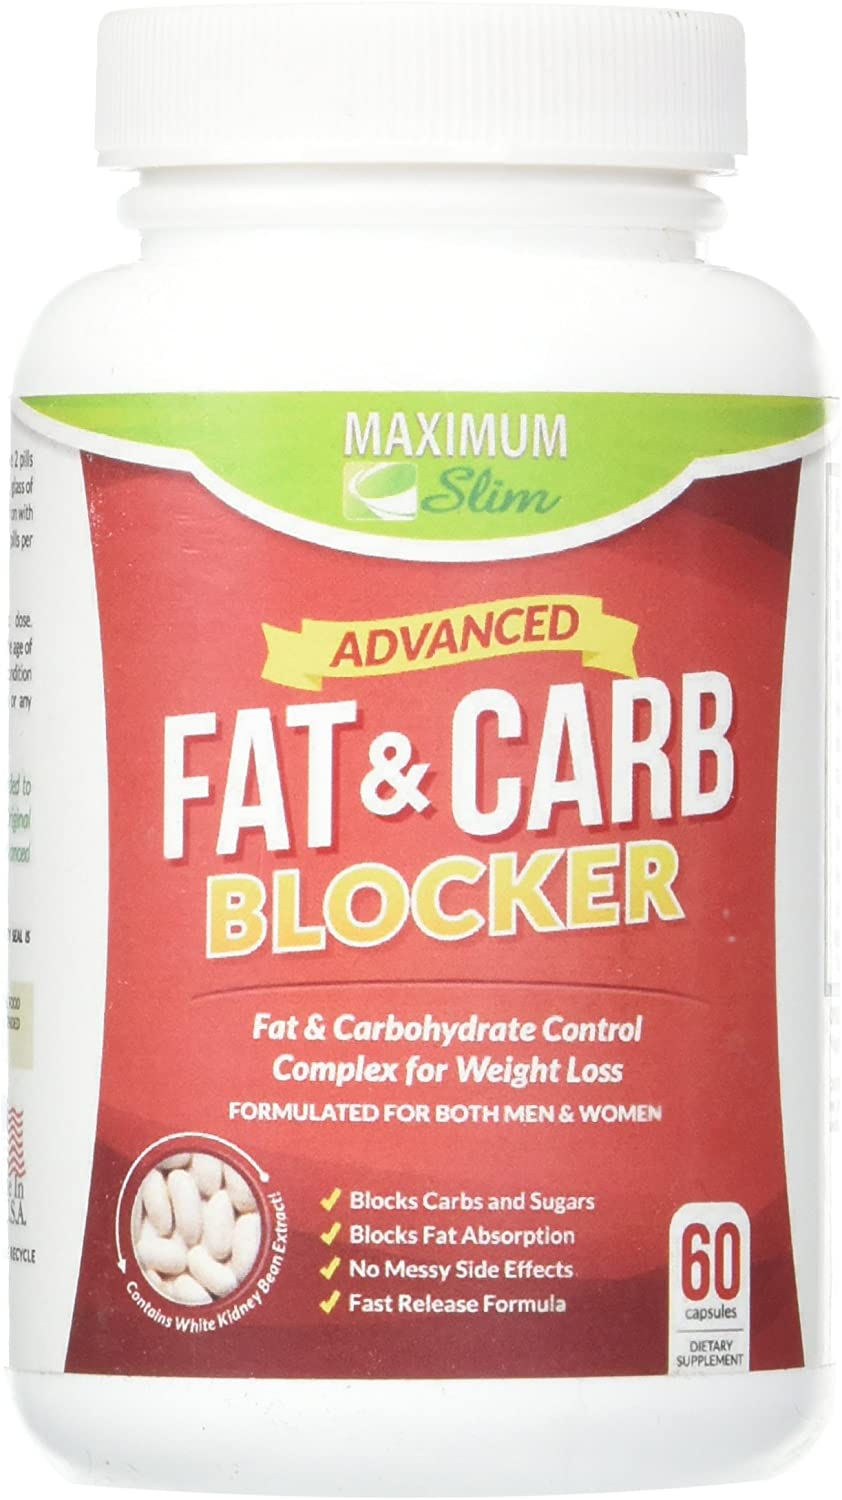 MAXIMUM SLIM Fat and Carb Blocker 60 Capsules, 0.02 Pound